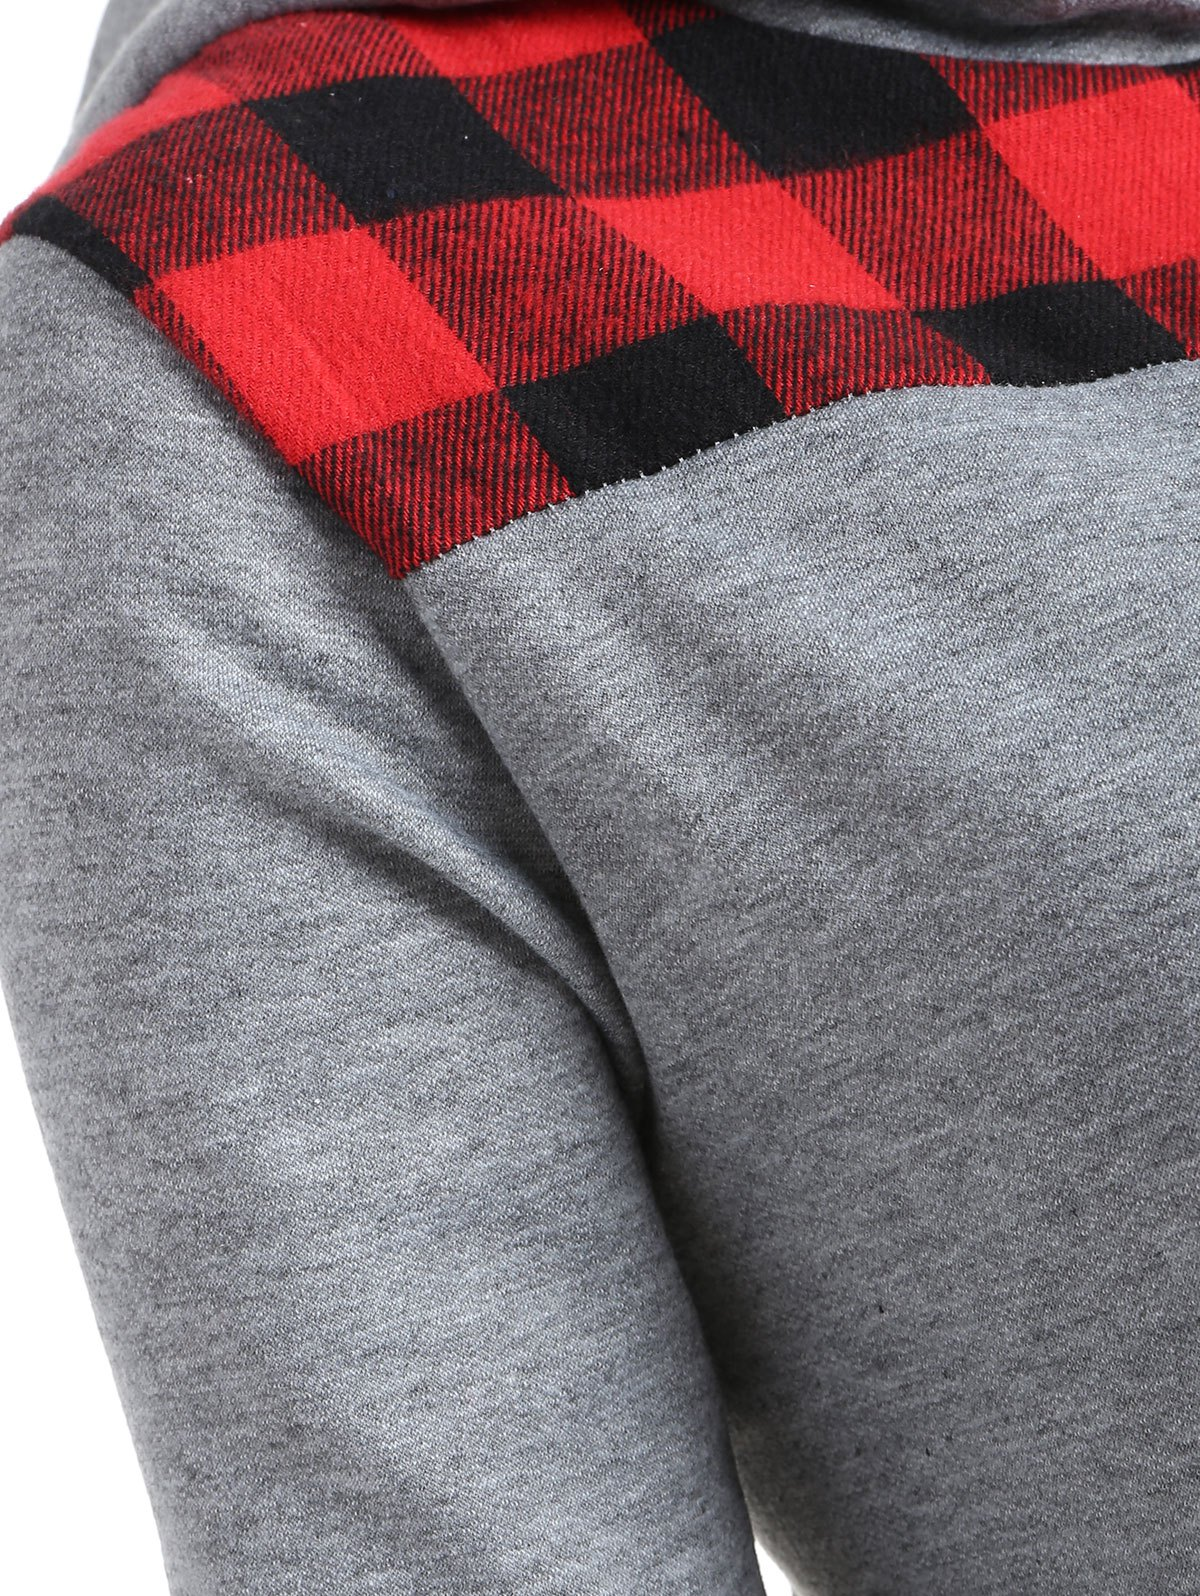 Plus Size Plaid Trim Zip Up Hoodie - GRAY/RED XL